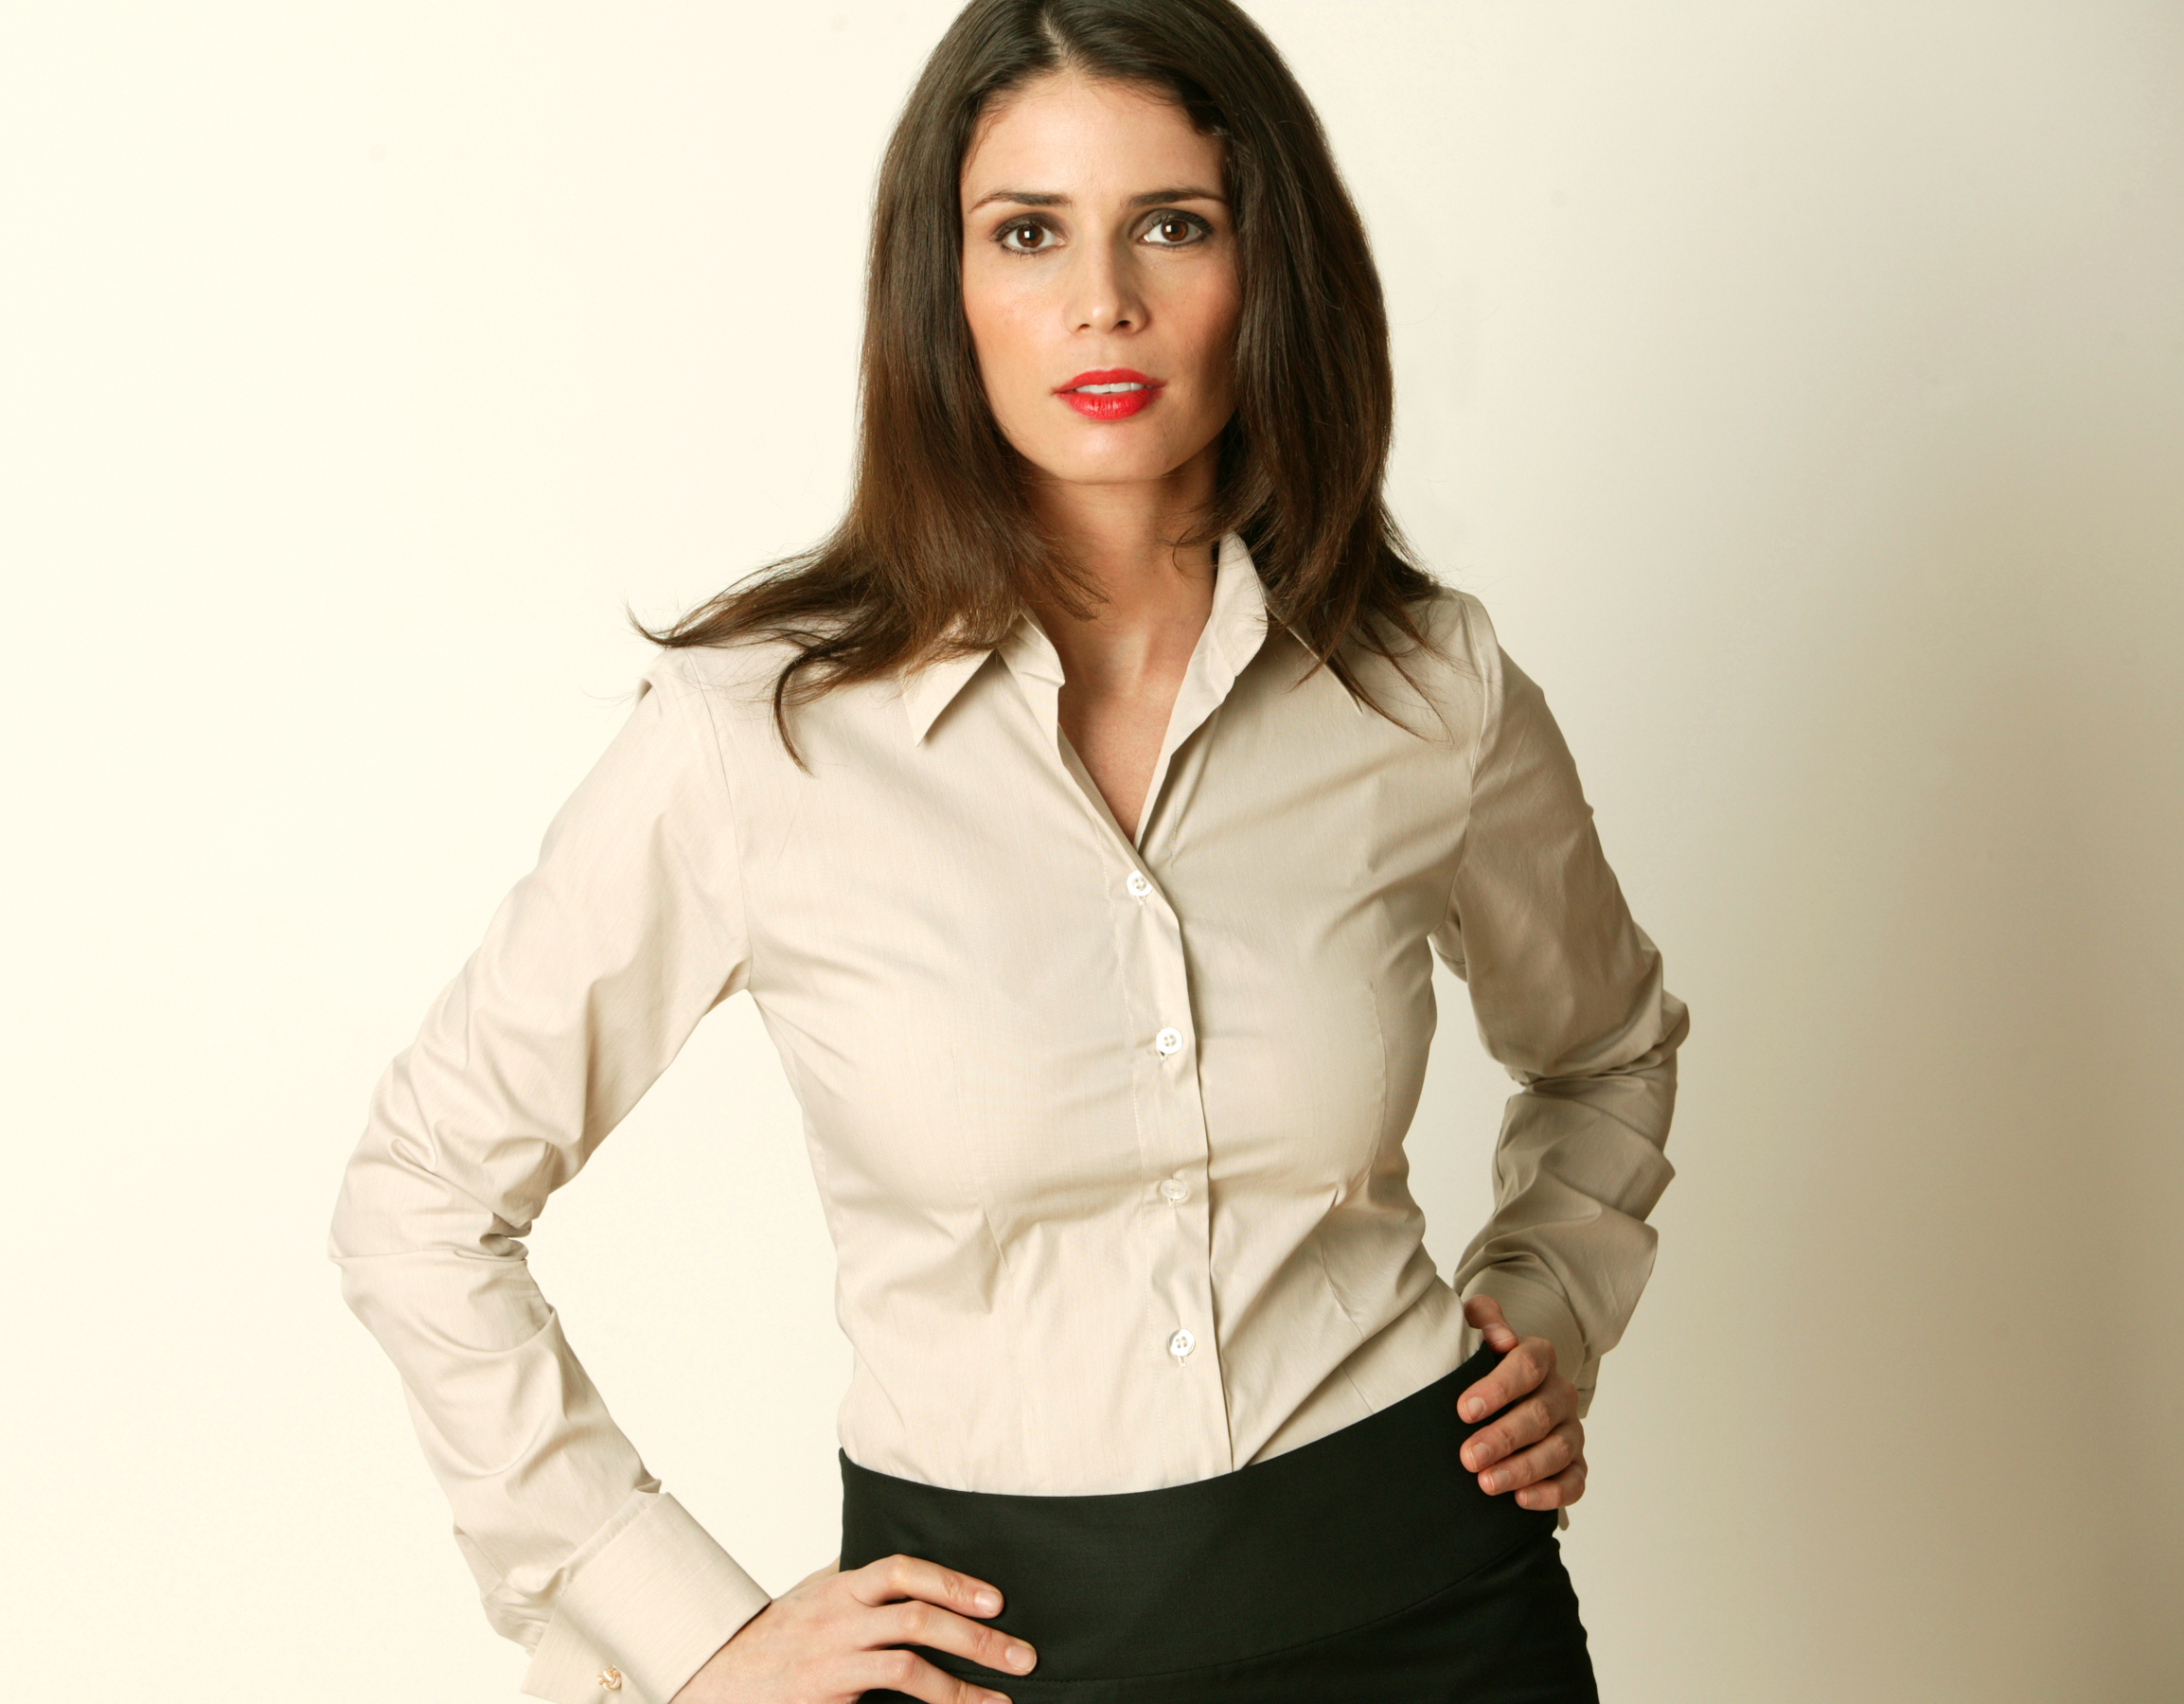 New Women In Men39s Dress Shirts  The Sexiest Way To Wear A JJ  JJ